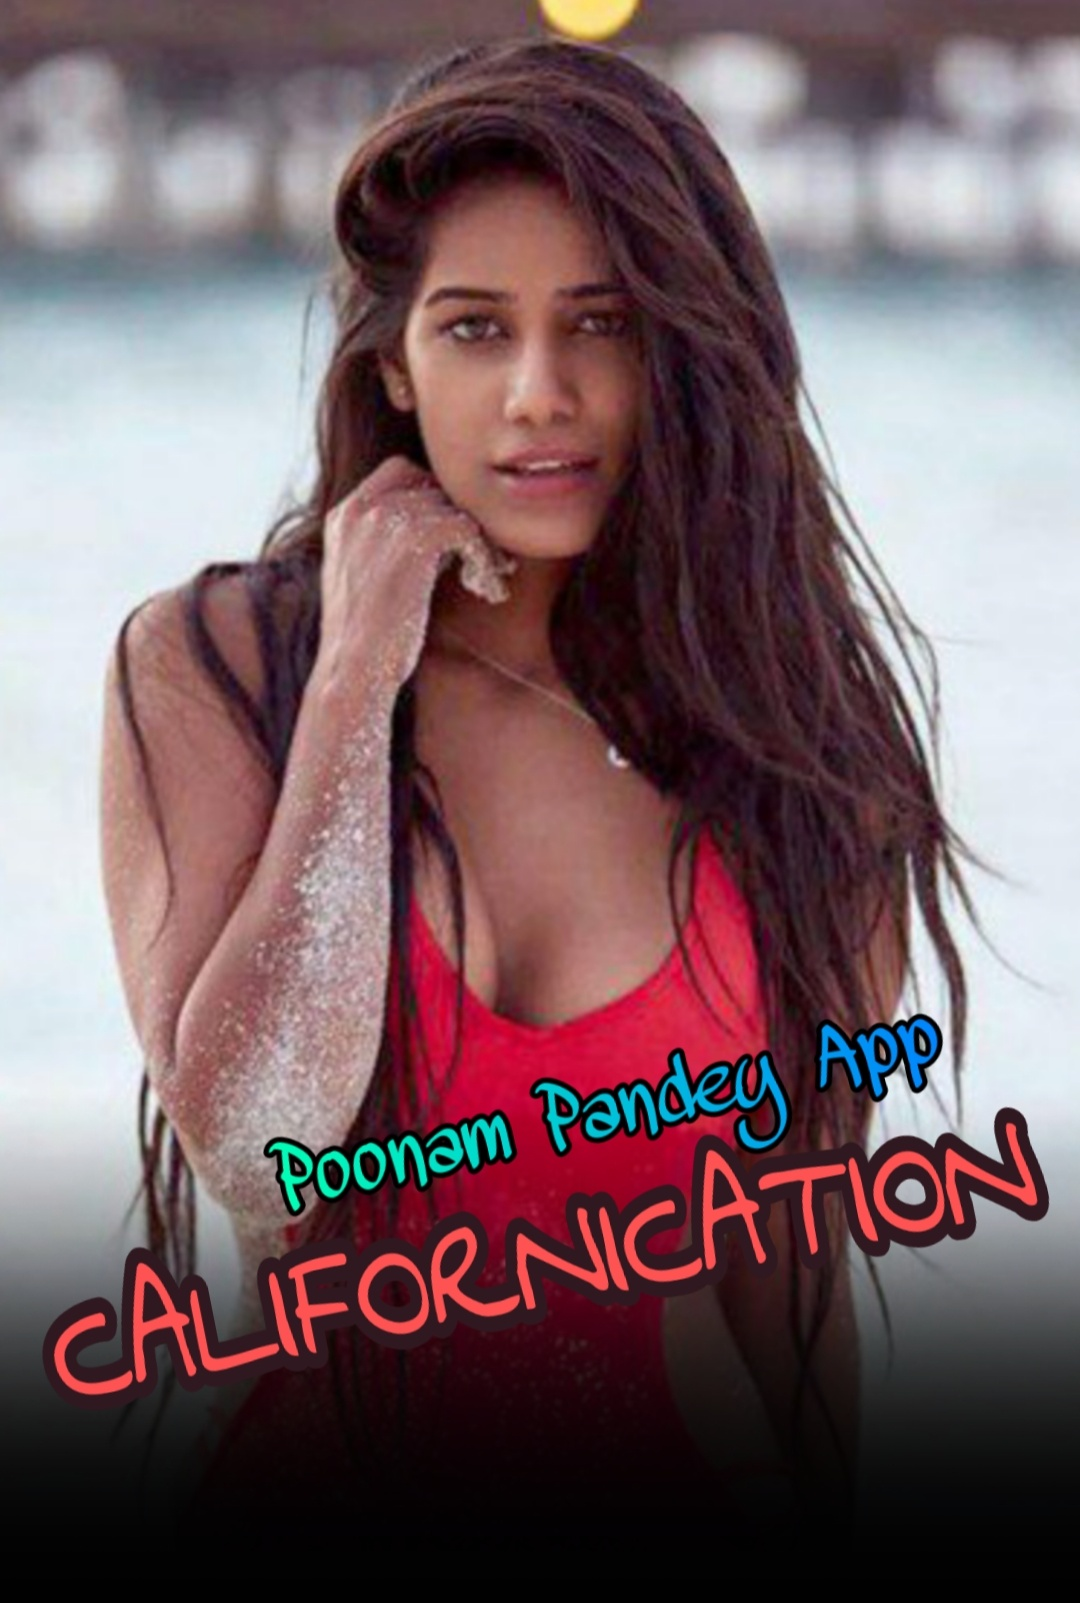 Californication 2020 Hindi Poonam Pandey Hot Video 720p HDRip 92MB Download